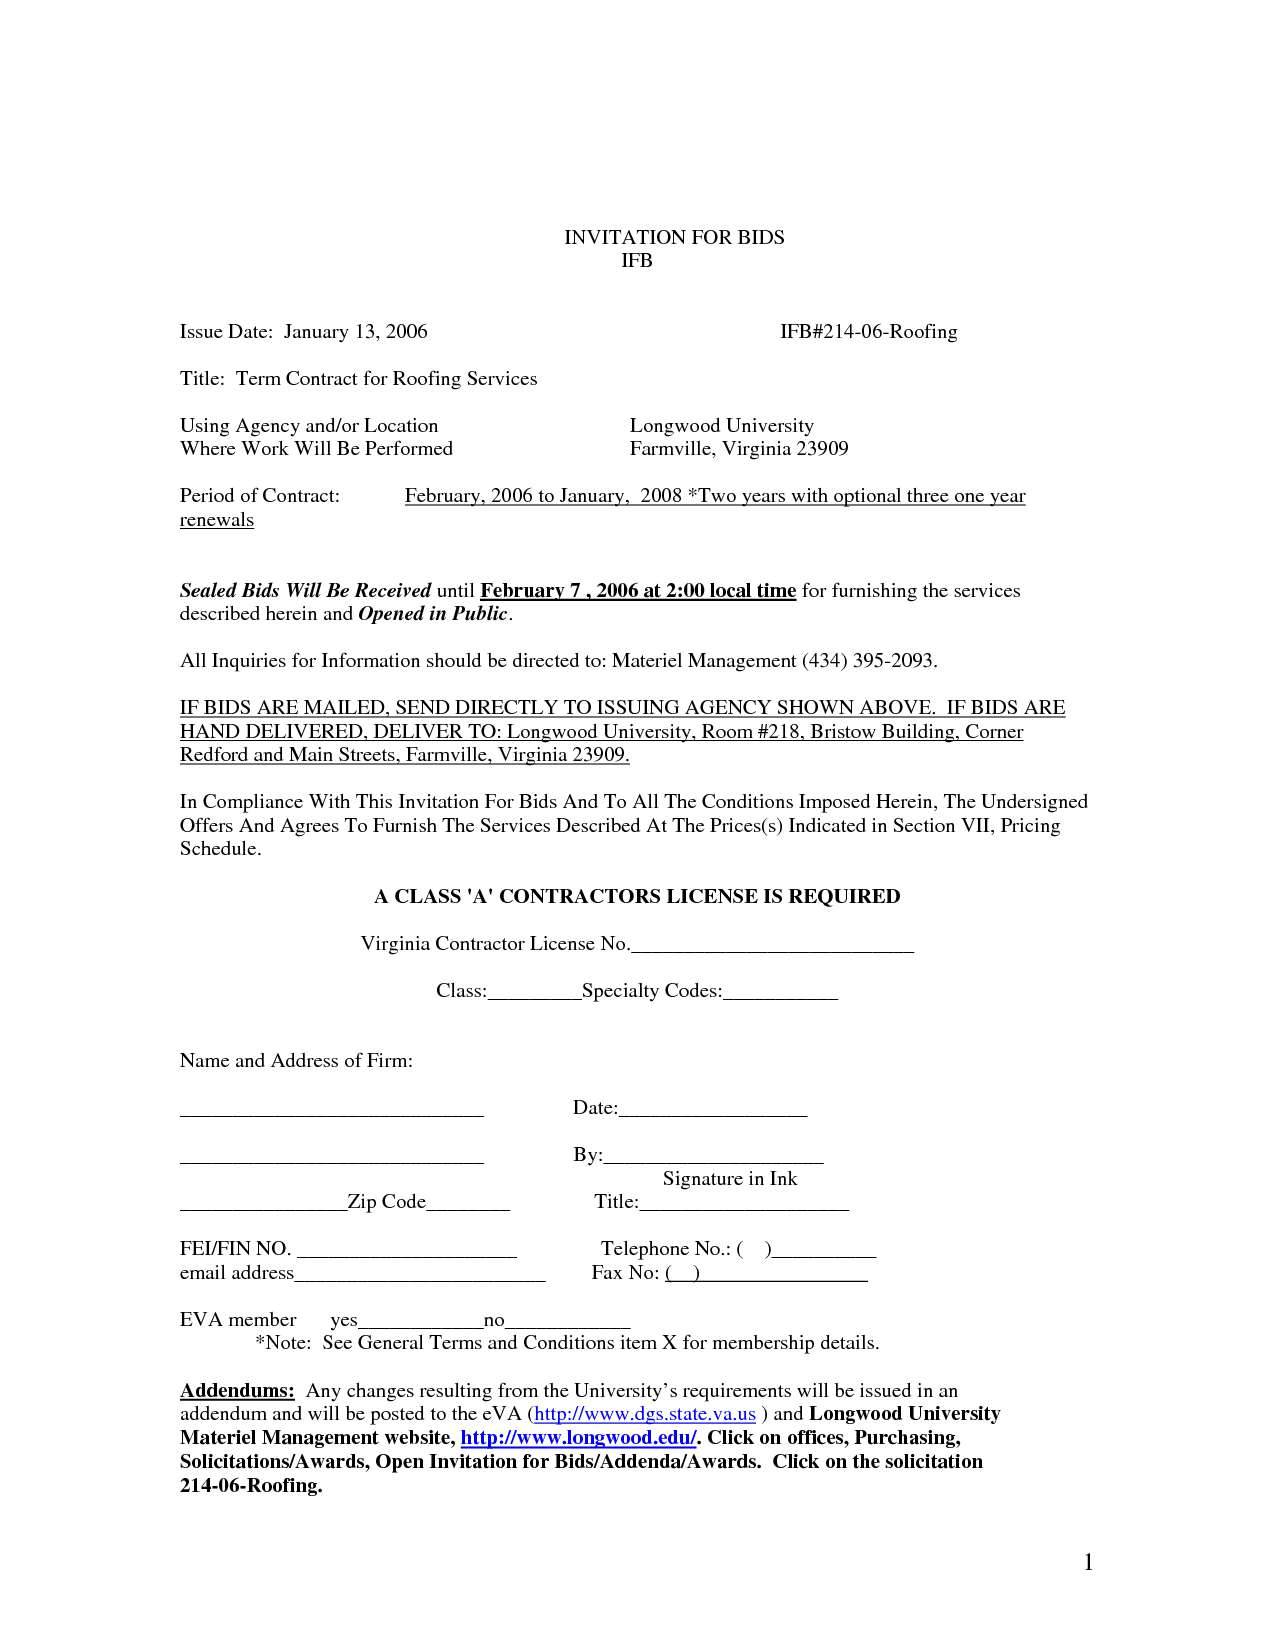 Roofing Contract Template Free Printable Documents